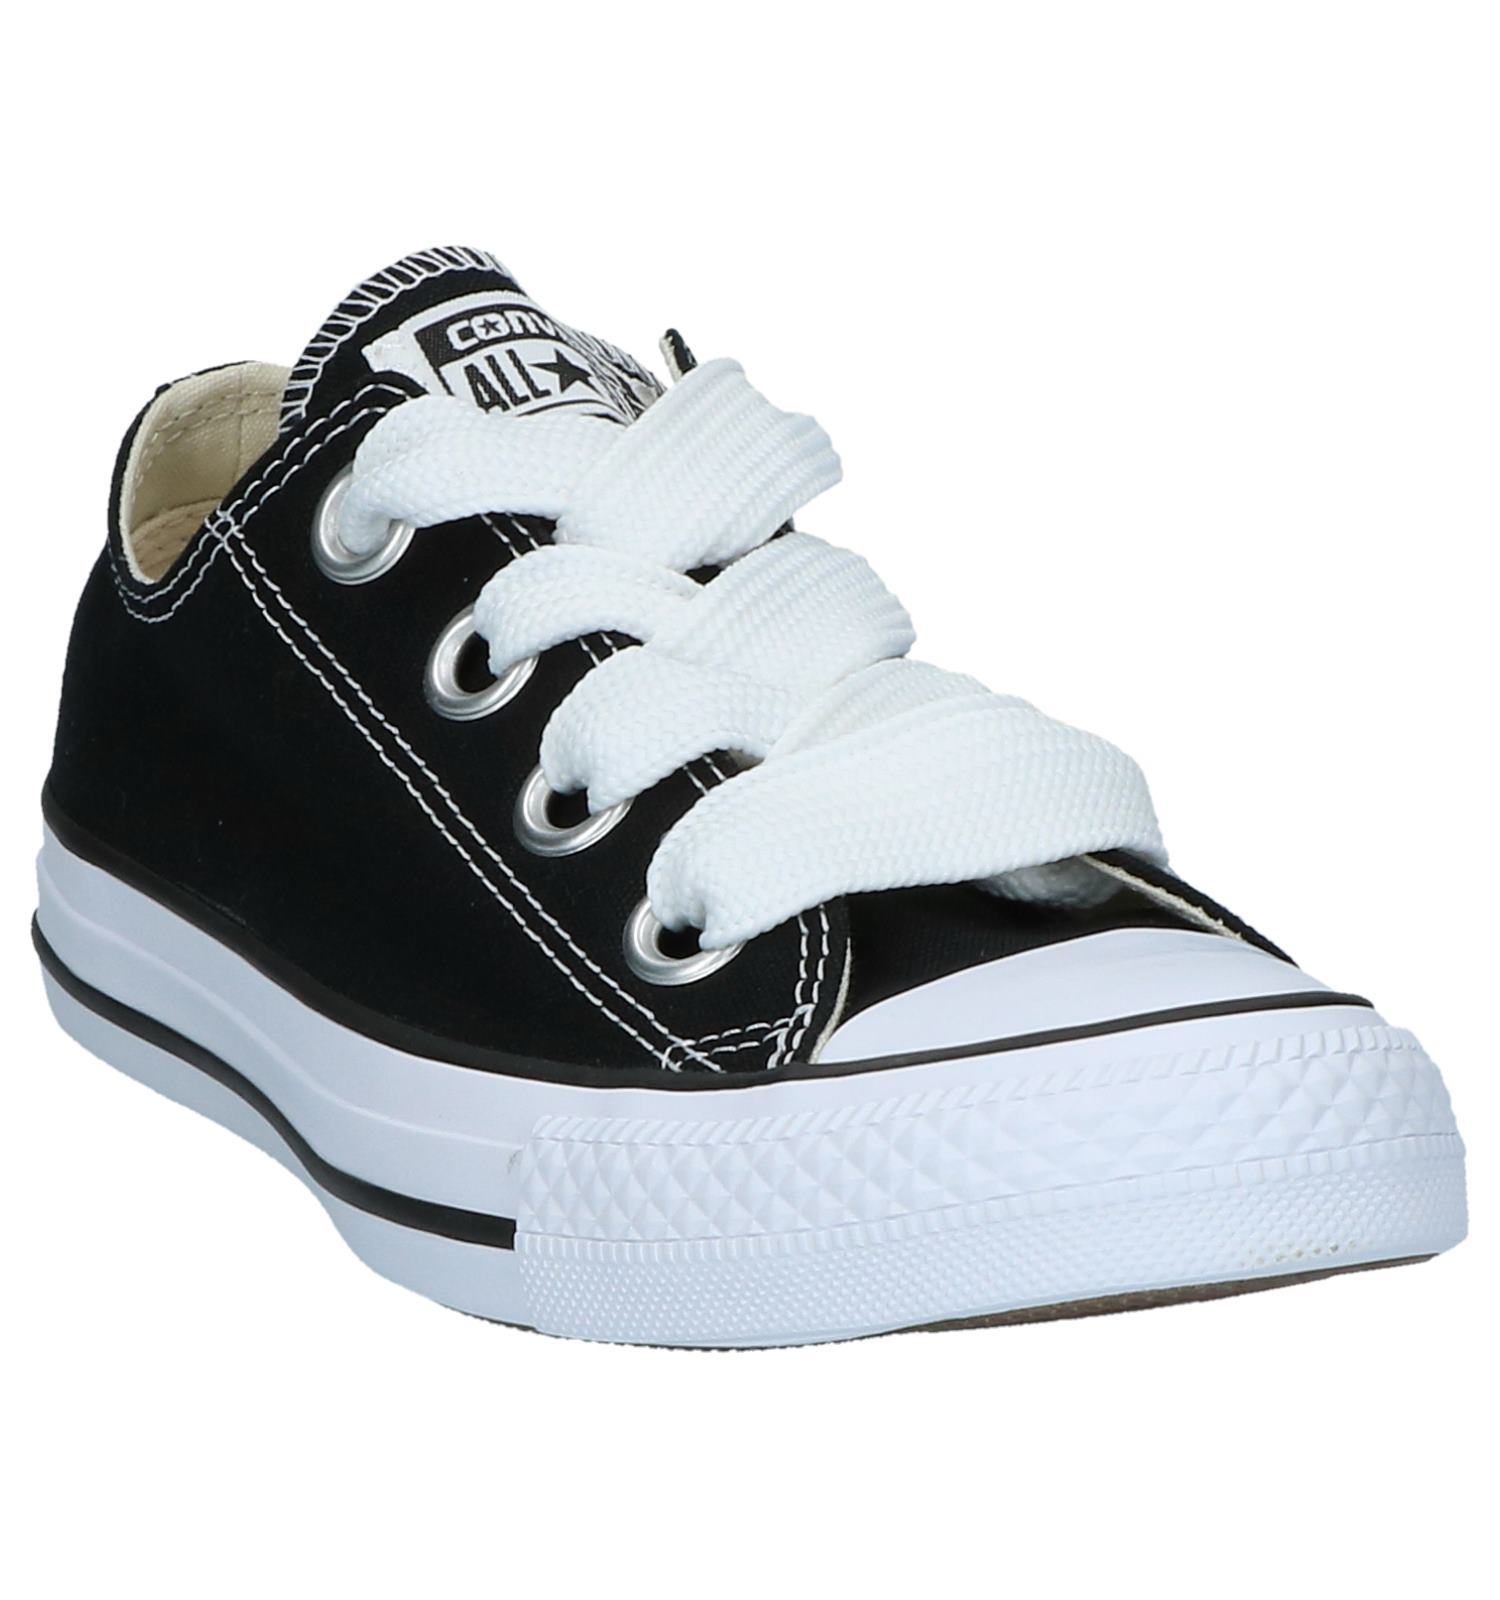 Eyelets Converse Taylor Ox Sneakers Zwarte Chuck Star All Big Yf7gyvb6